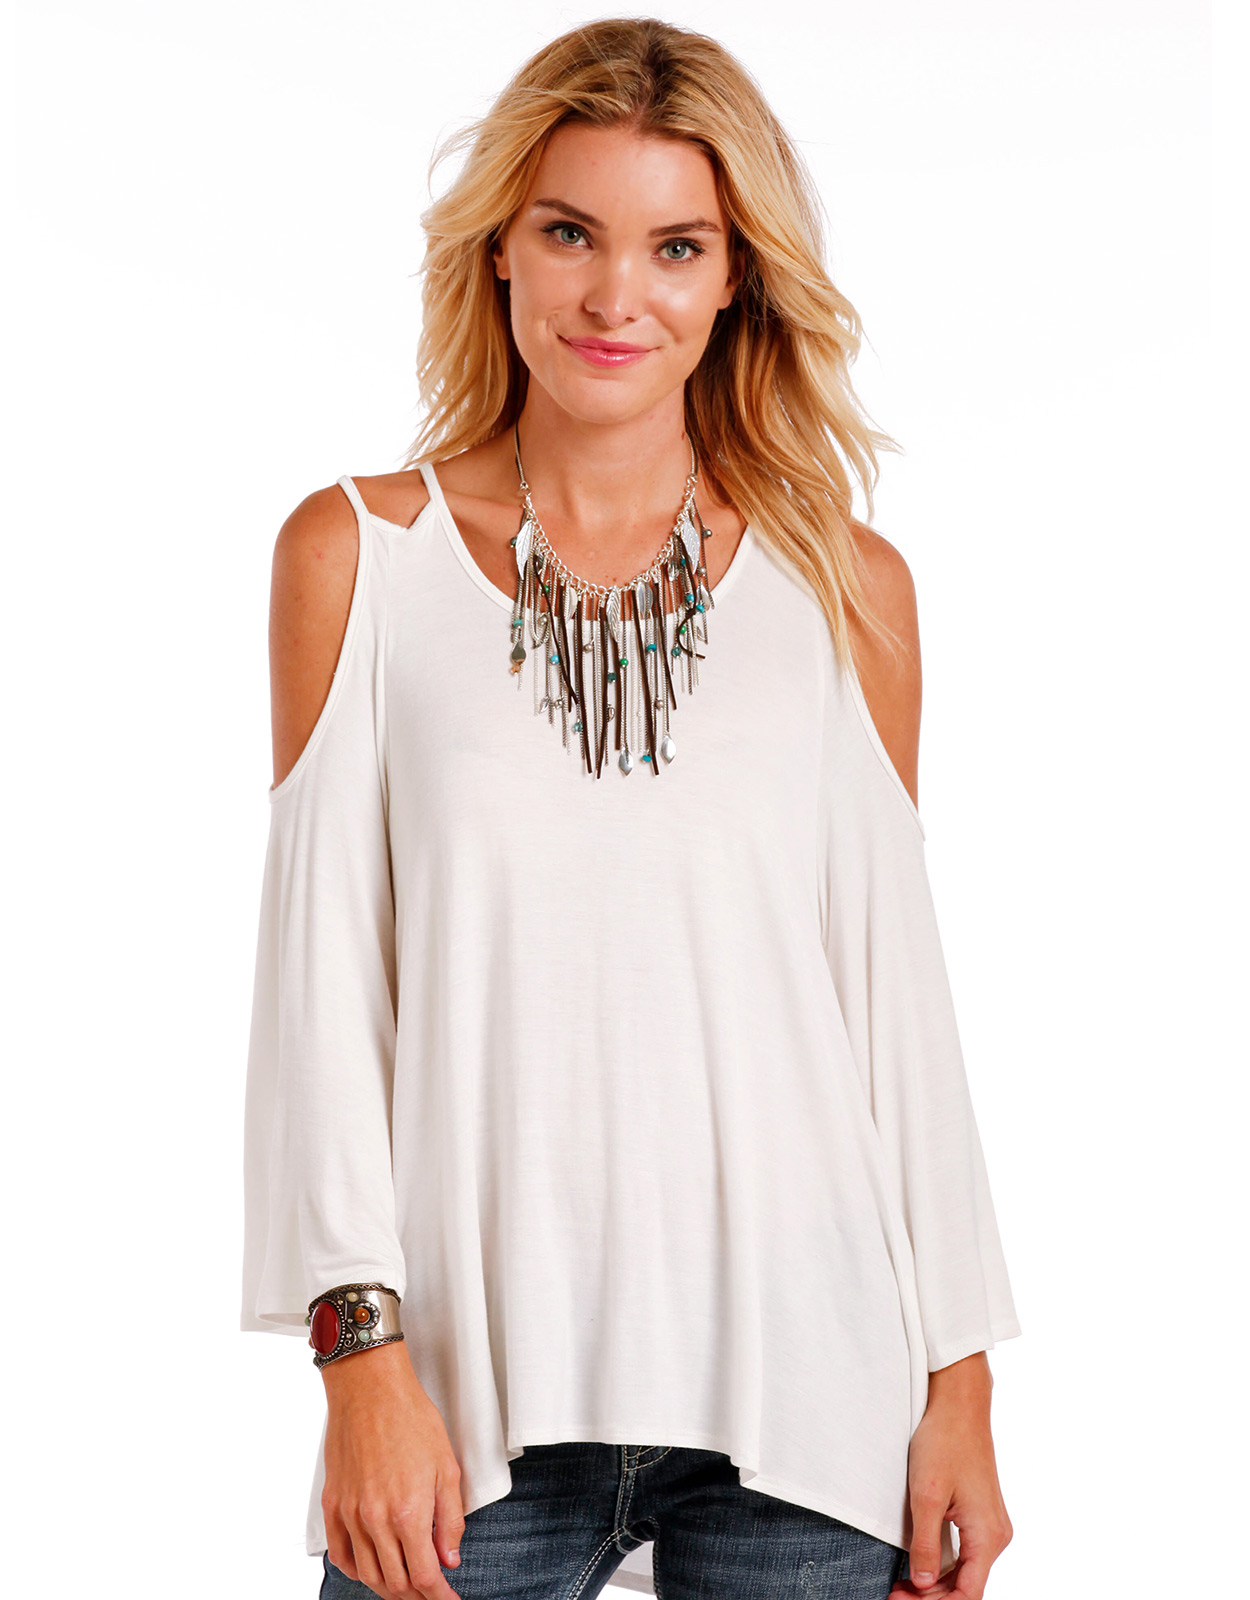 Panhandle Women's 3/4 Sleeve Solid Top - Natural